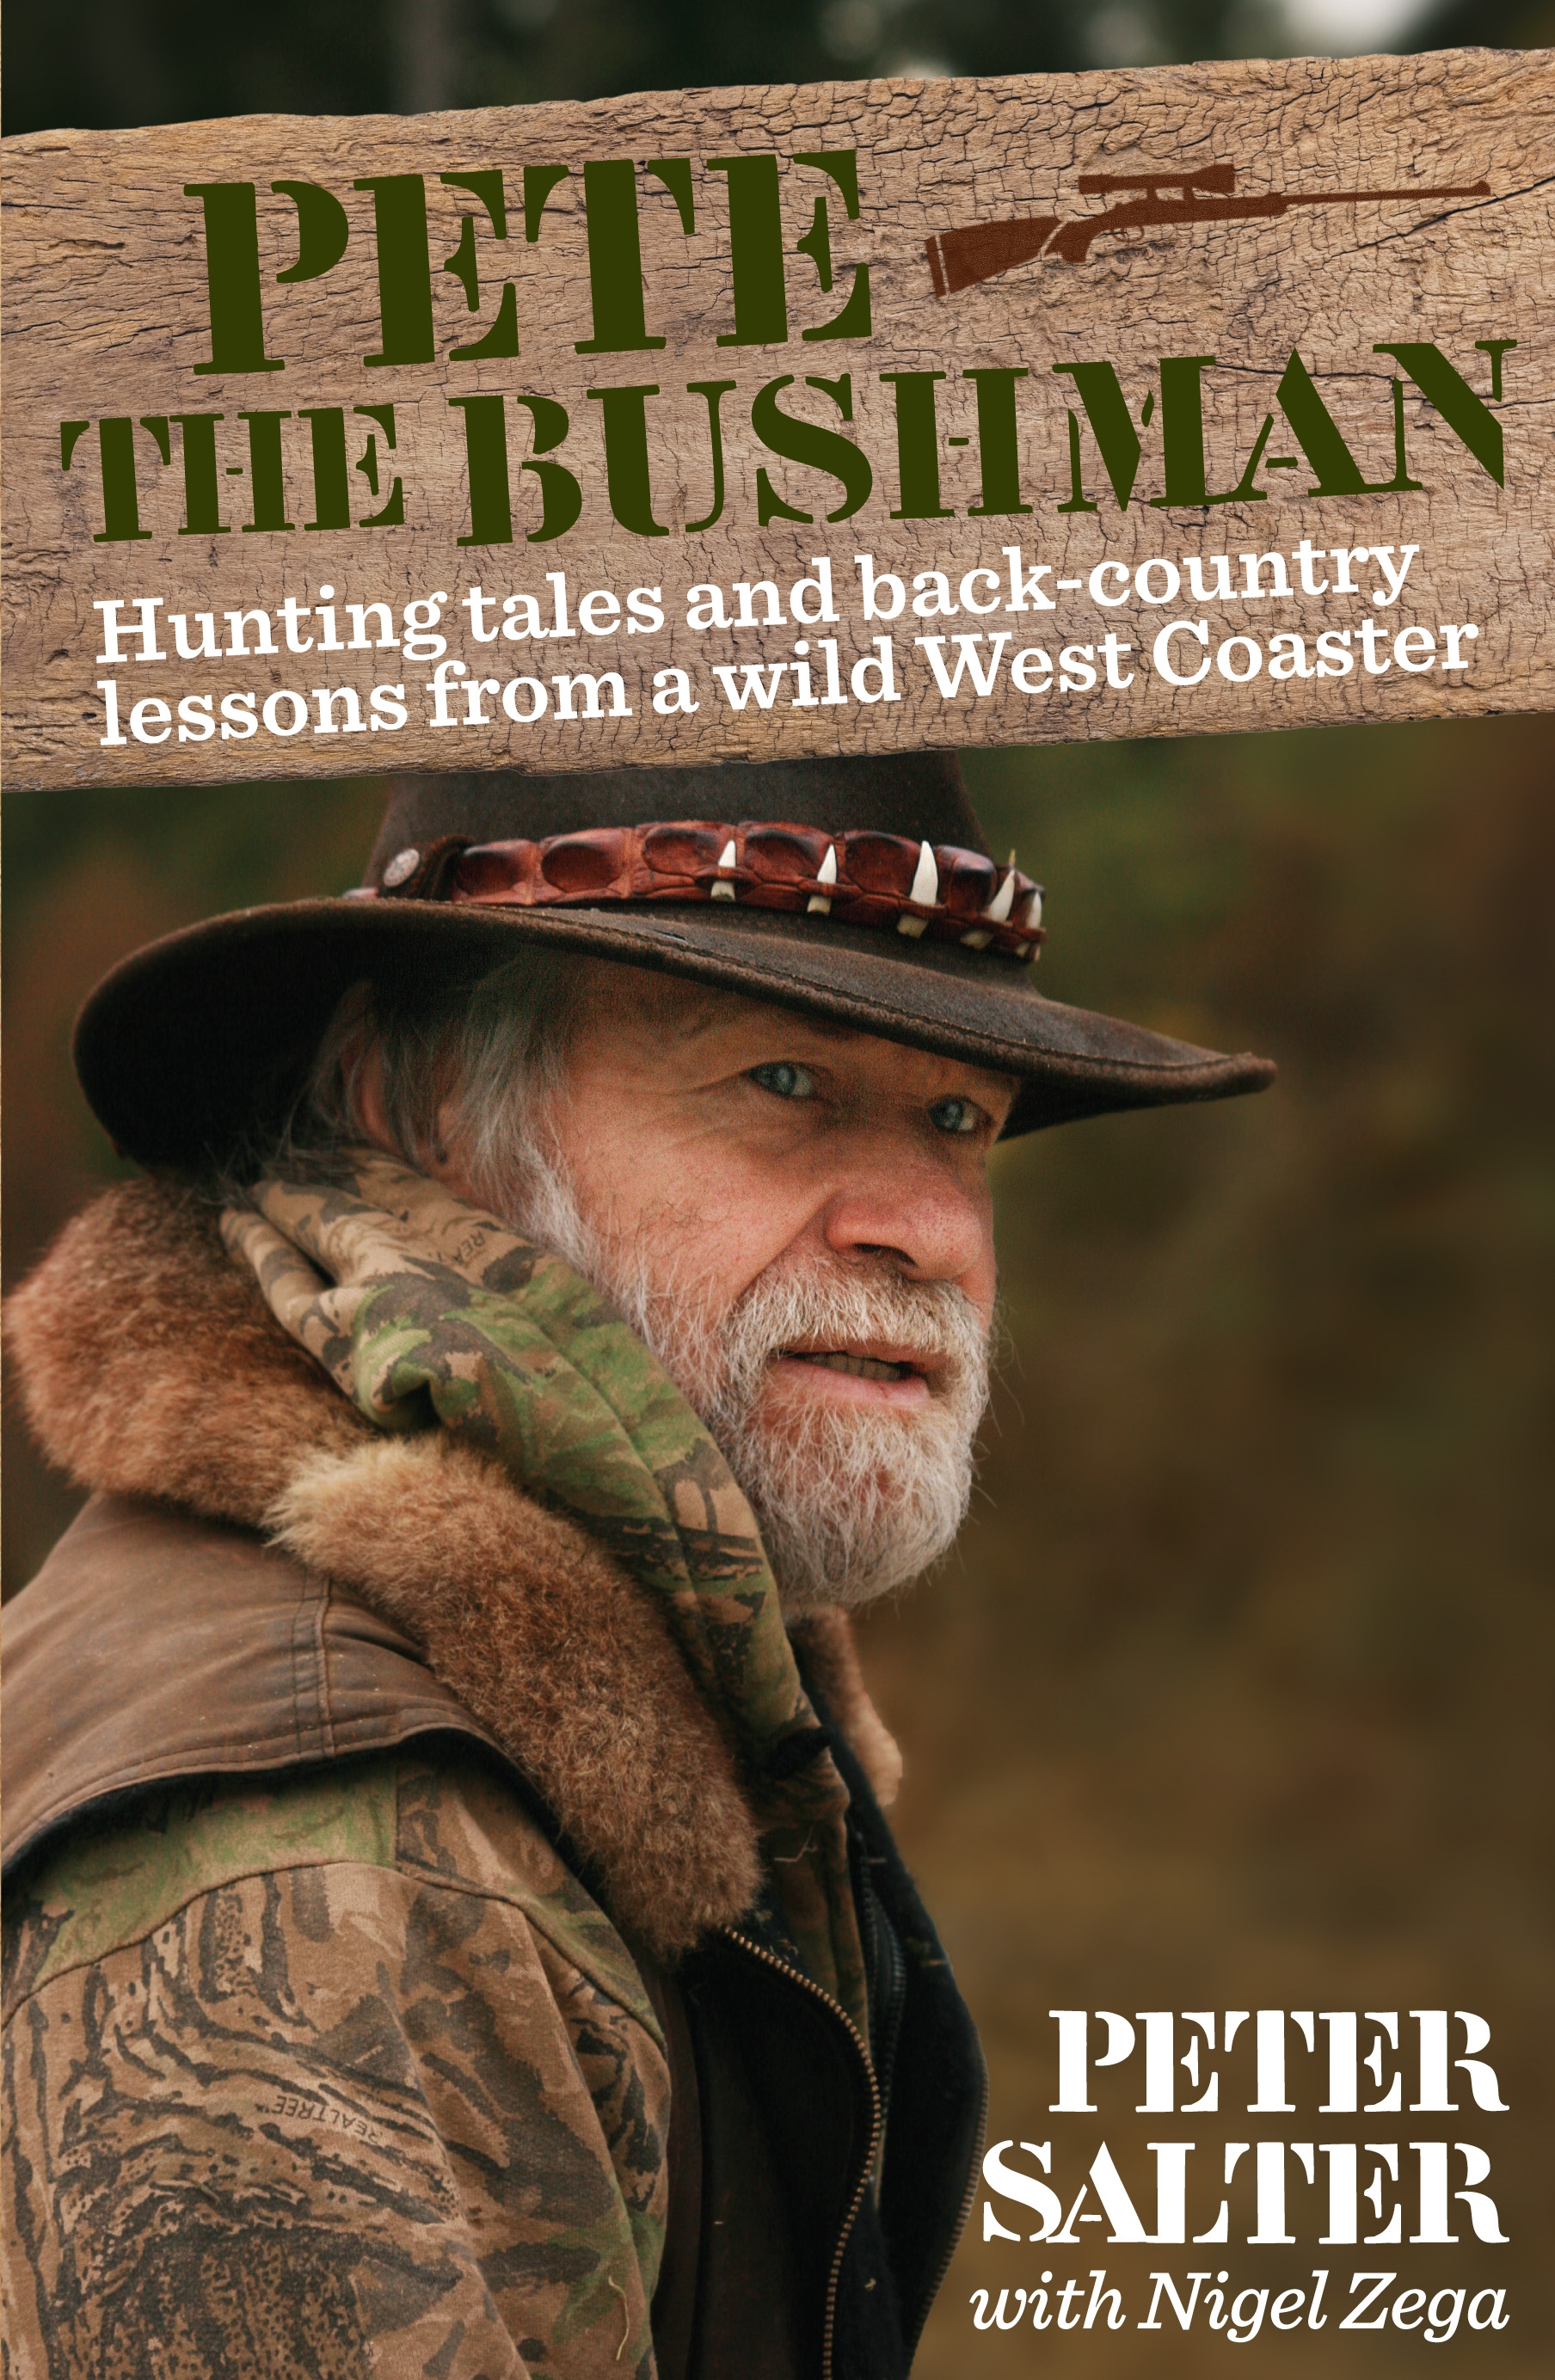 Pete the Bushman Hunting Tales and Back-Country Lessons from a Wild West-Coaster